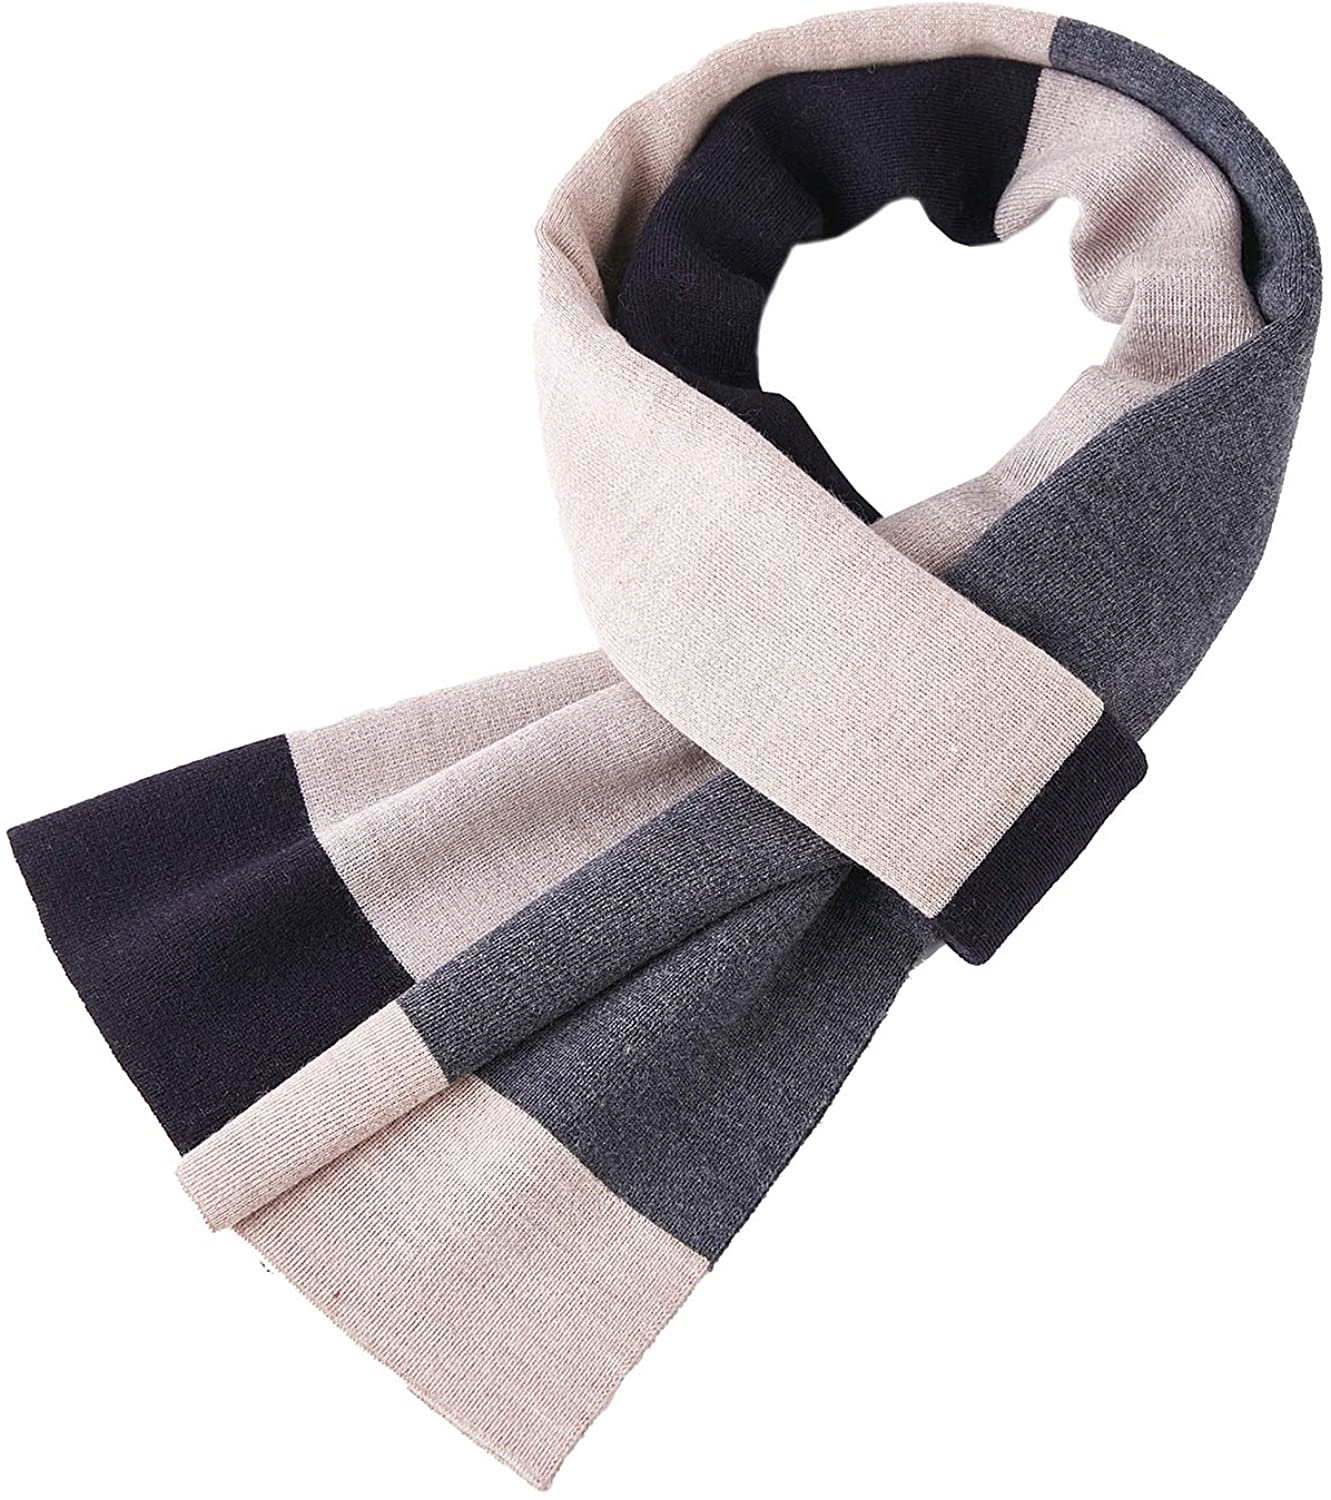 Taylormia Men's Merino Wool Scarf - Warm Soft Thick Long Scarves for Fall & Winter